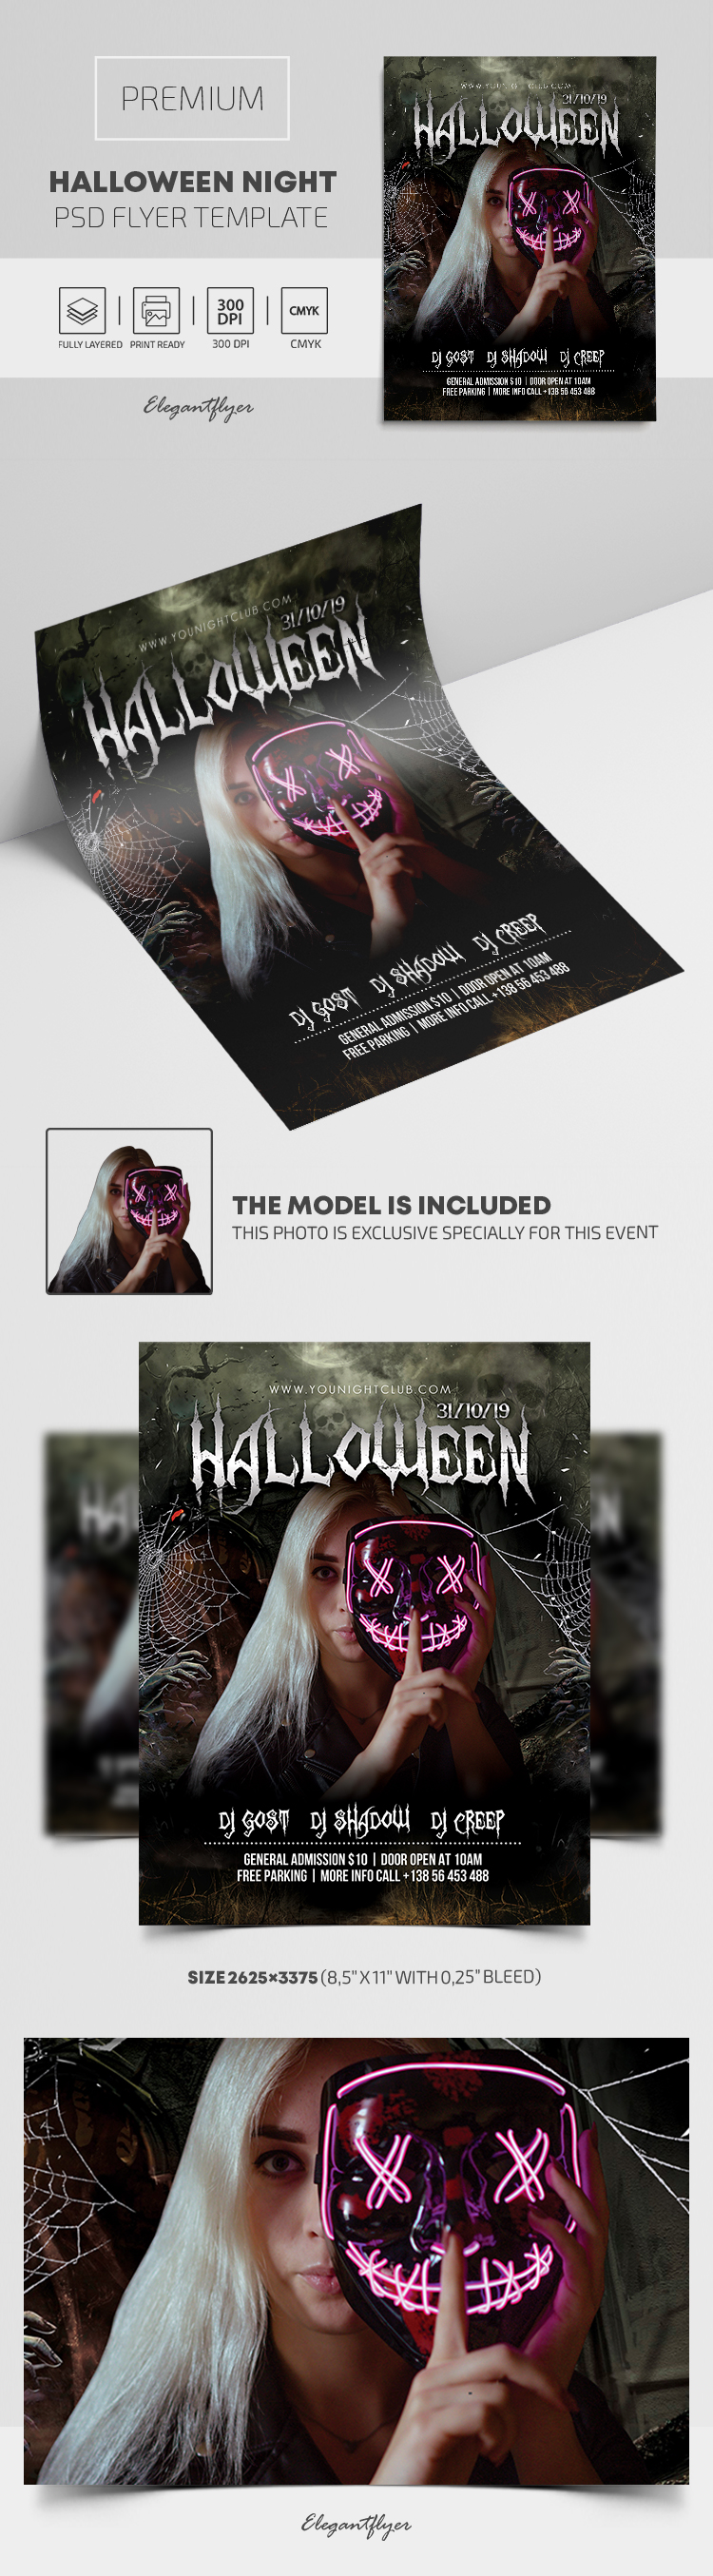 Halloween Night – Premium PSD Flyer Template